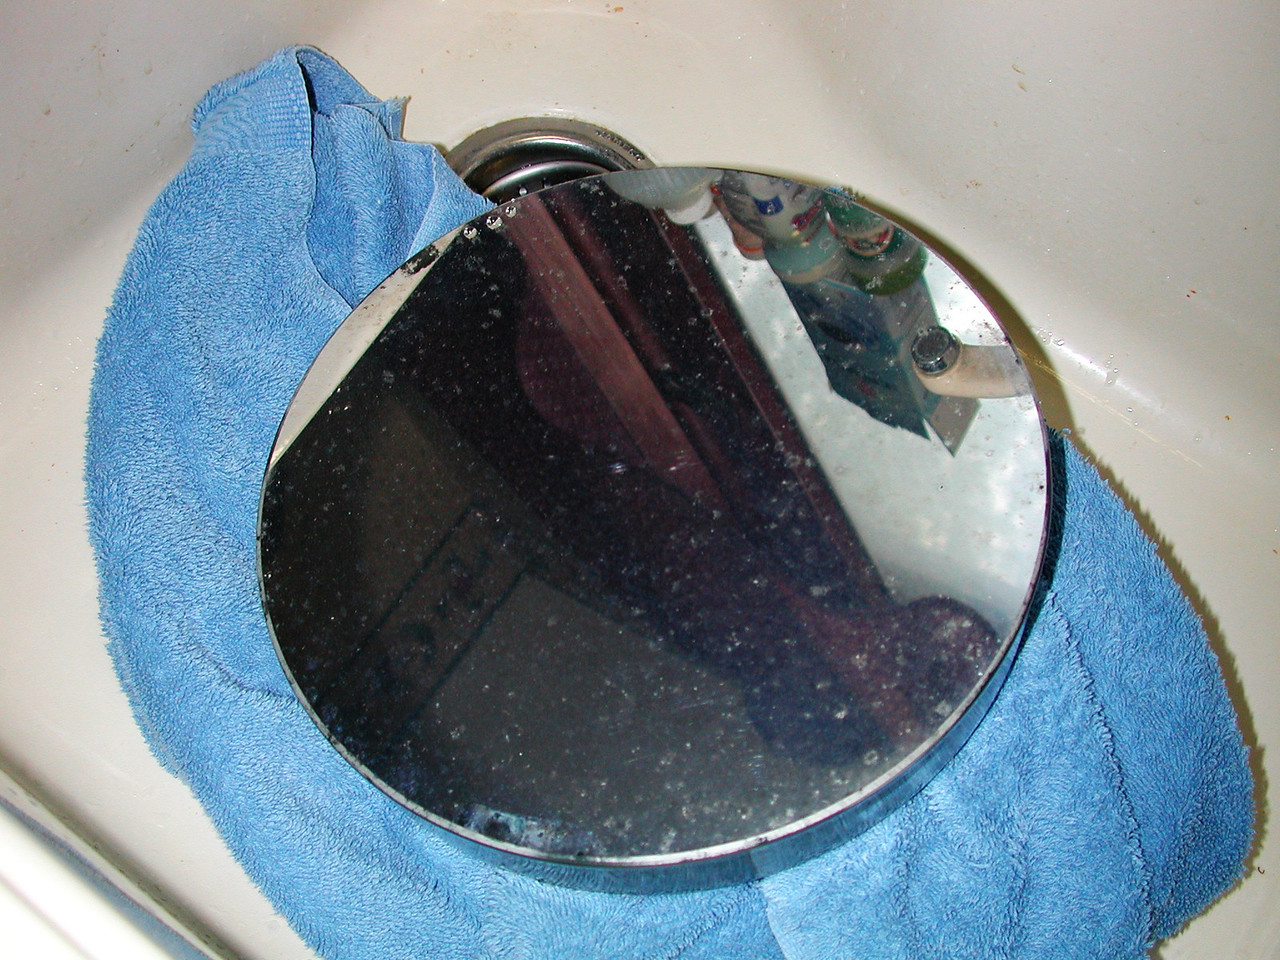 Original mirror before being cleaned.